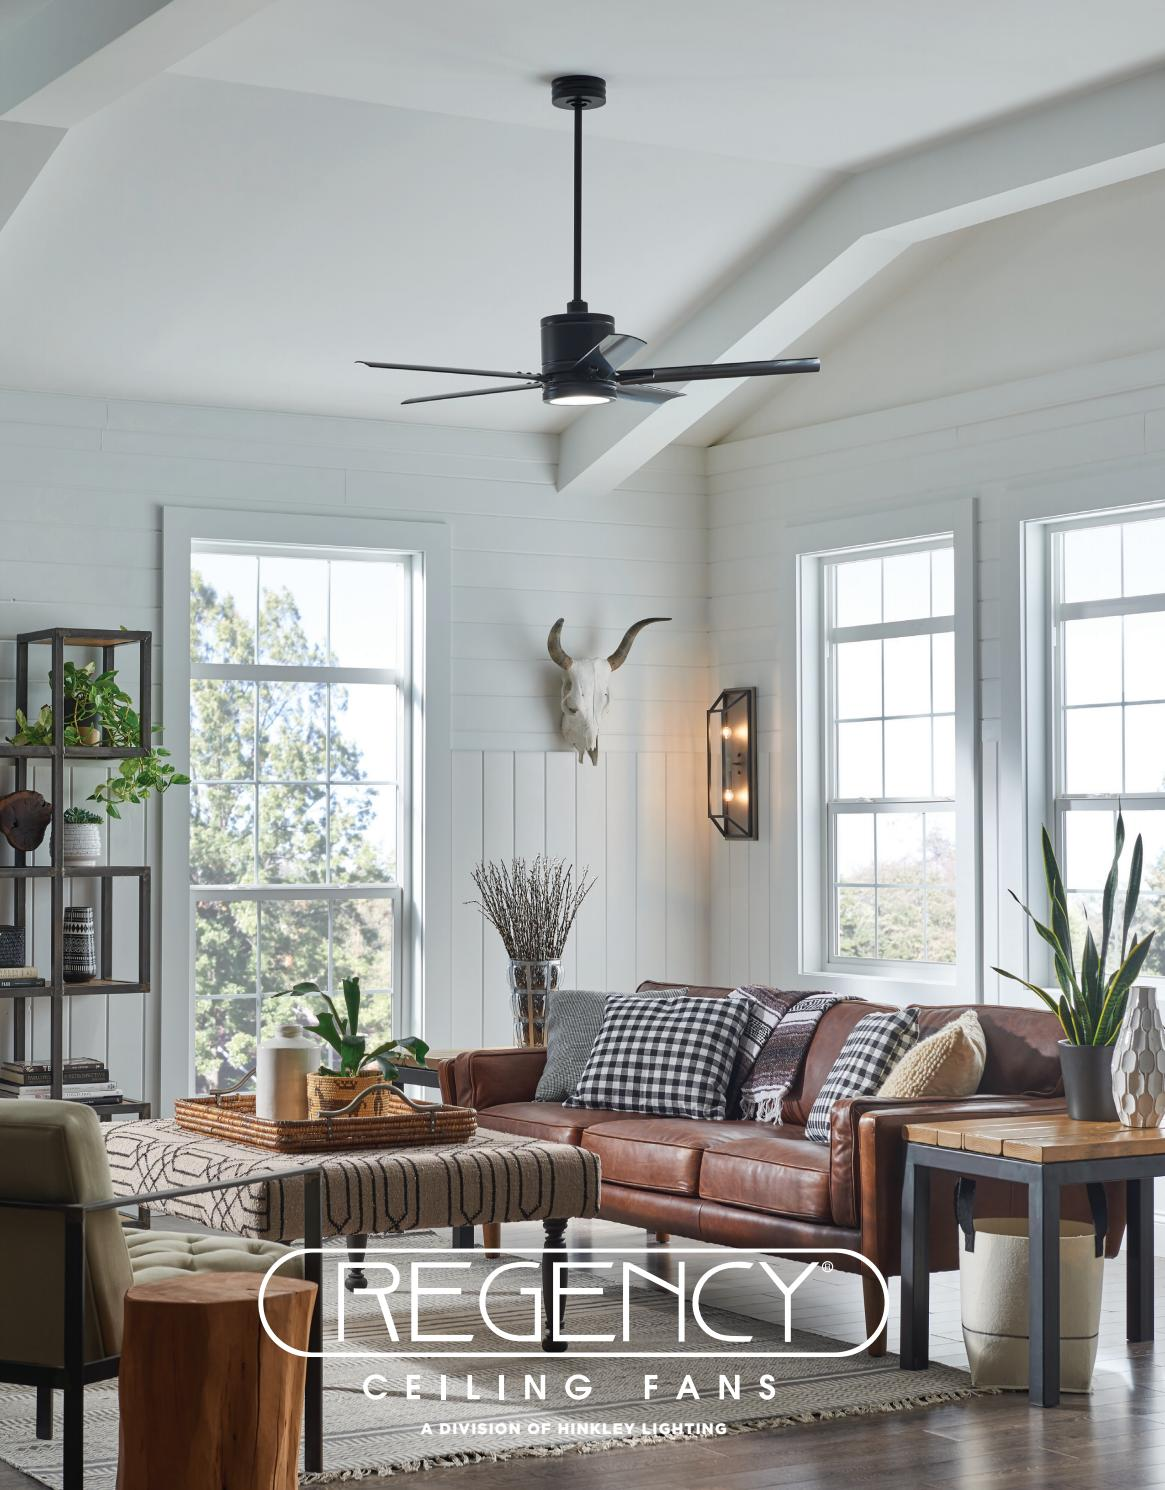 Regency Ceiling Fans 2019 Catalog By Hinkley Issuu